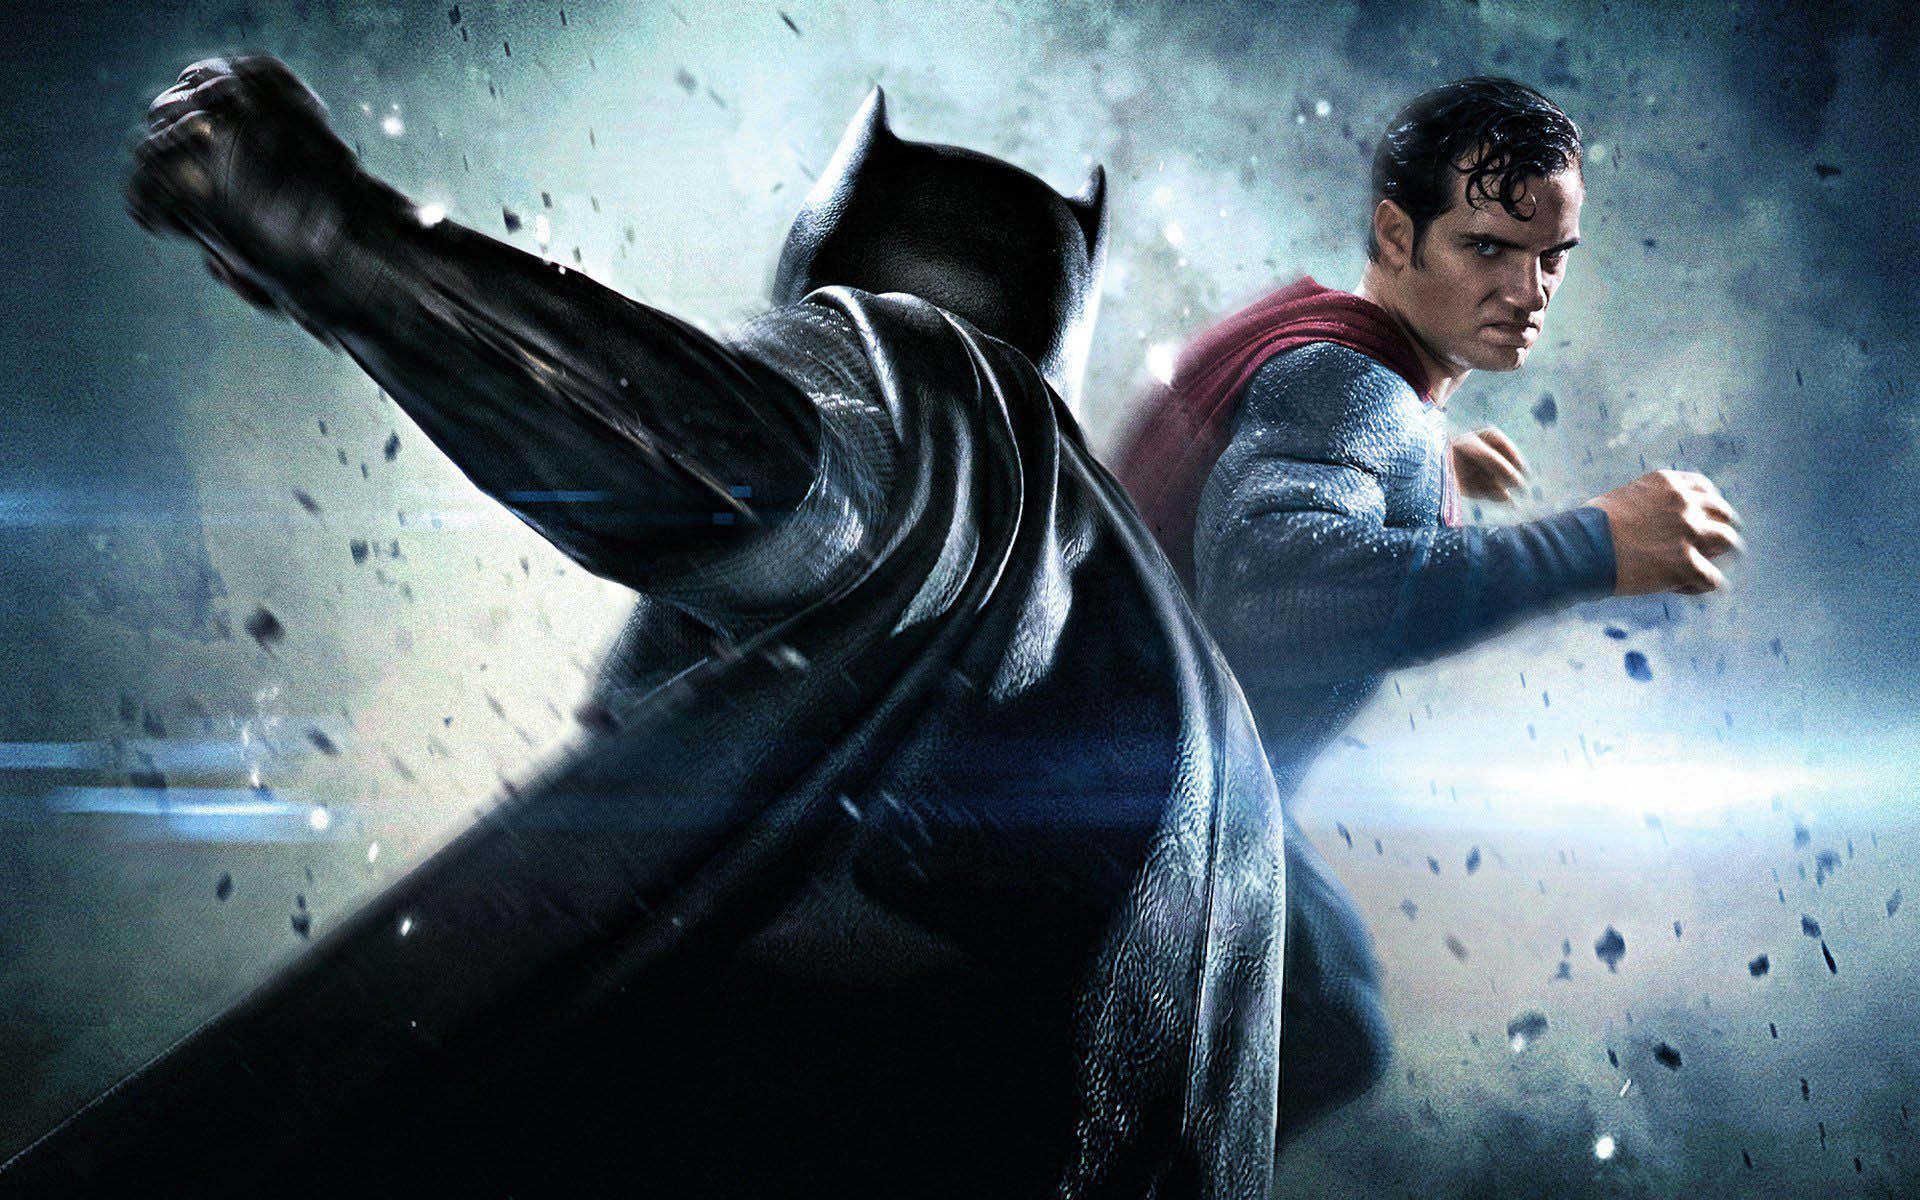 batman-fighting-superman-batman-v-superman-dawn-of-justice-wallpaper-58401 Batman v Superman: Dawn of Justice